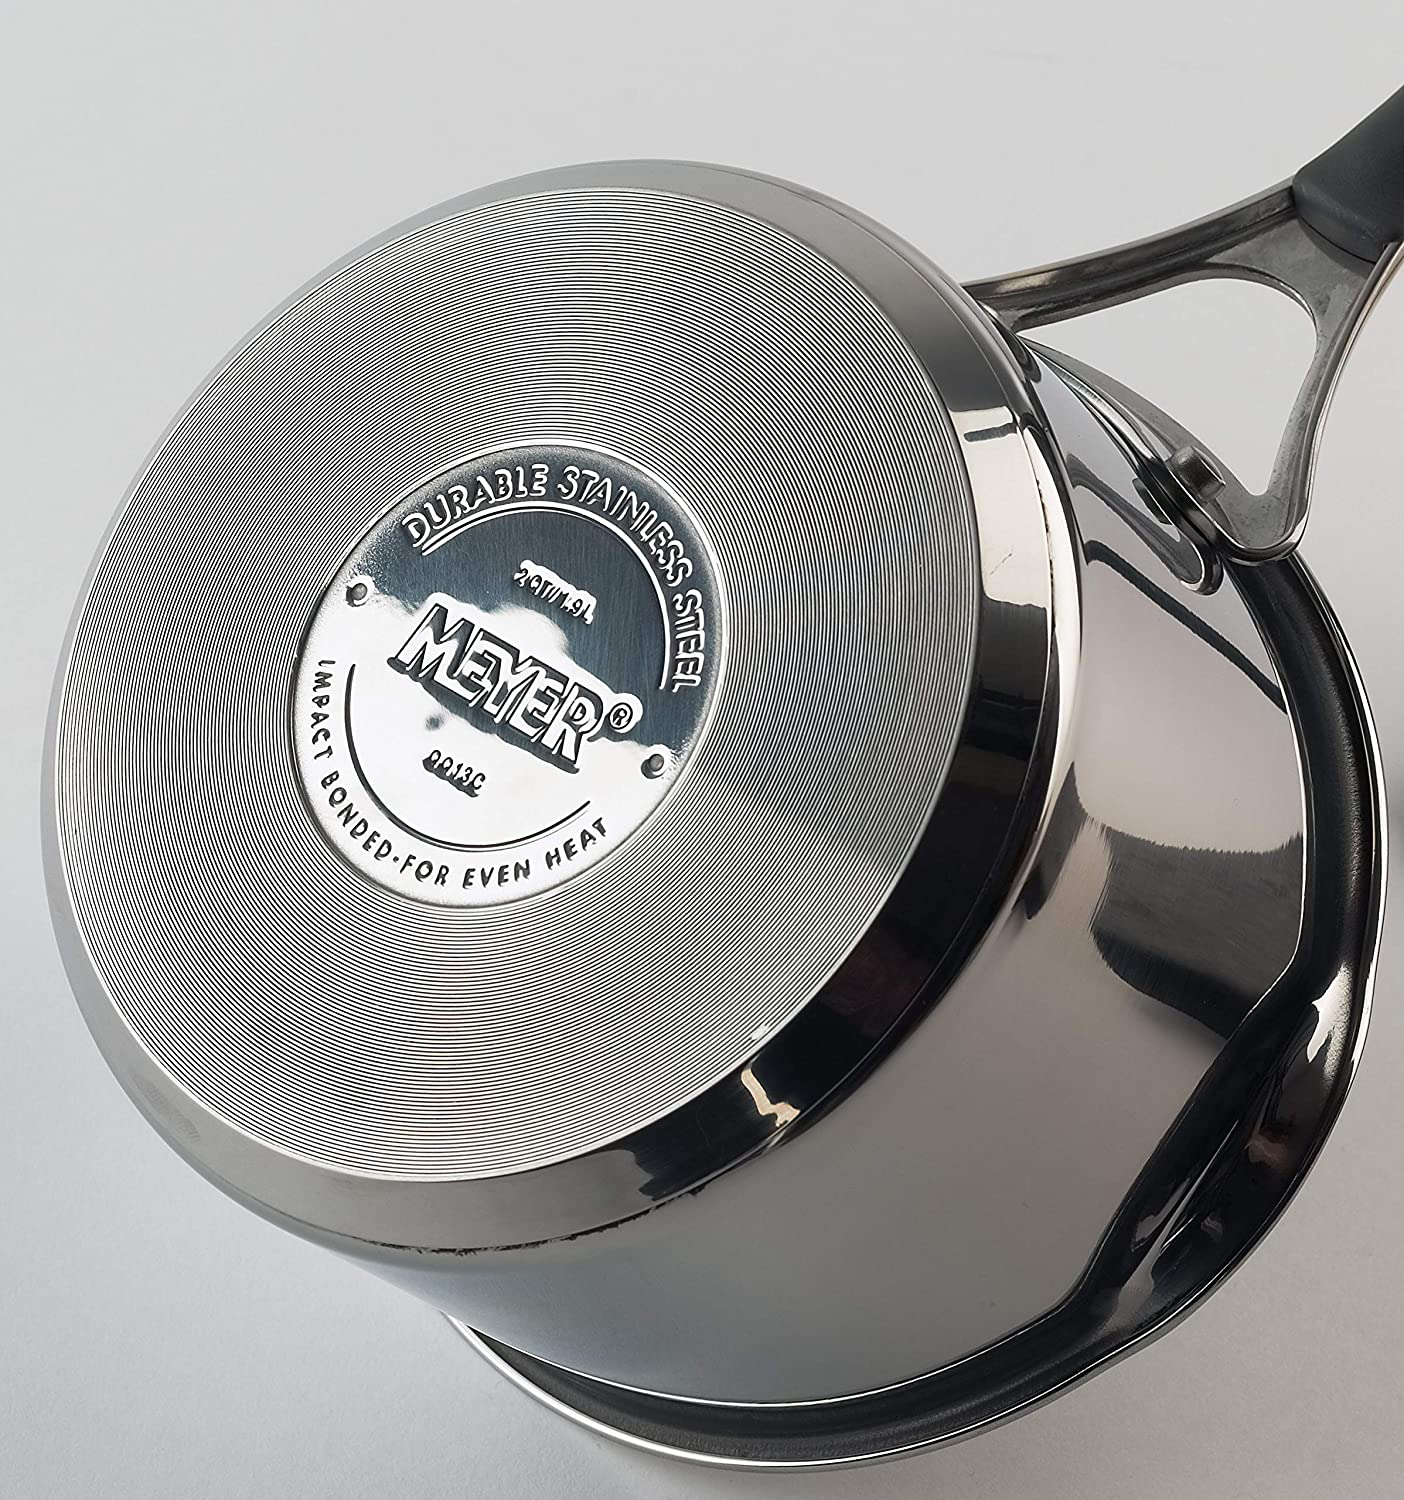 Best cookware for gas stoves - distributes heat evenly